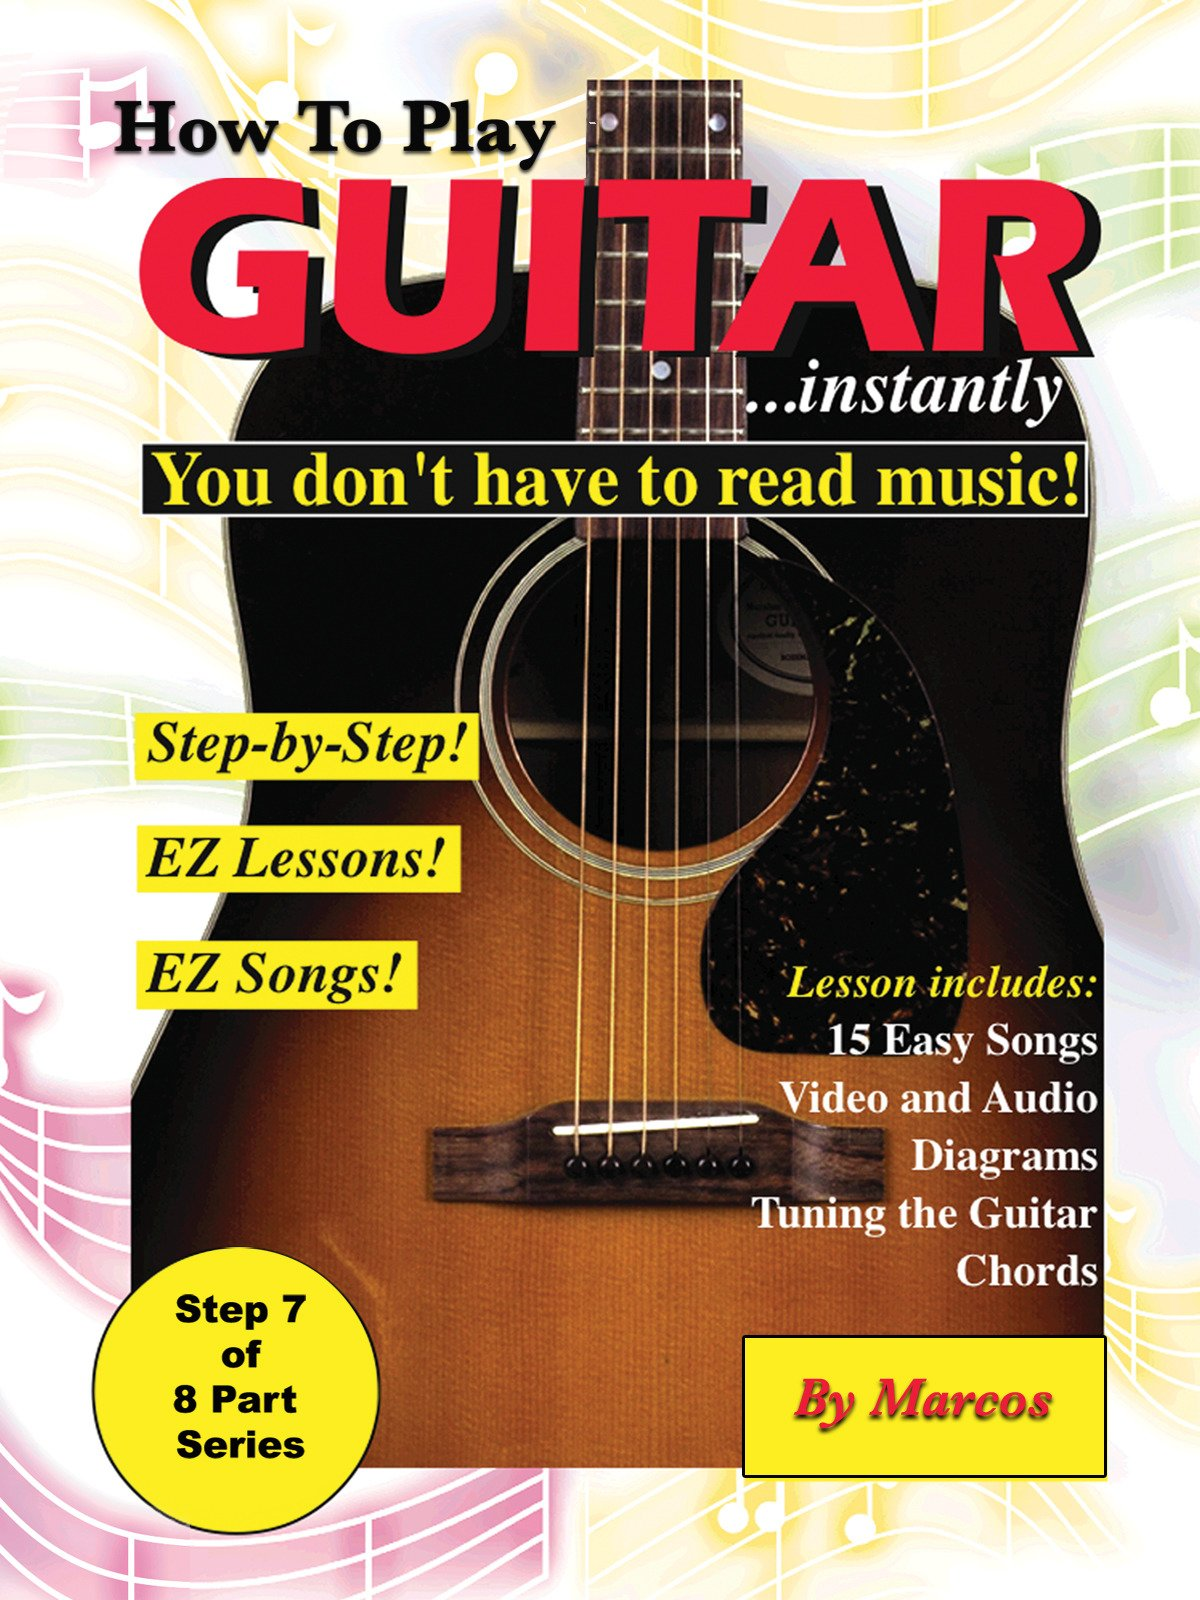 How To Play Guitar Instantly Marcos Habif Amazon Read Chord Diagrams Learn Music Digital Services Llc